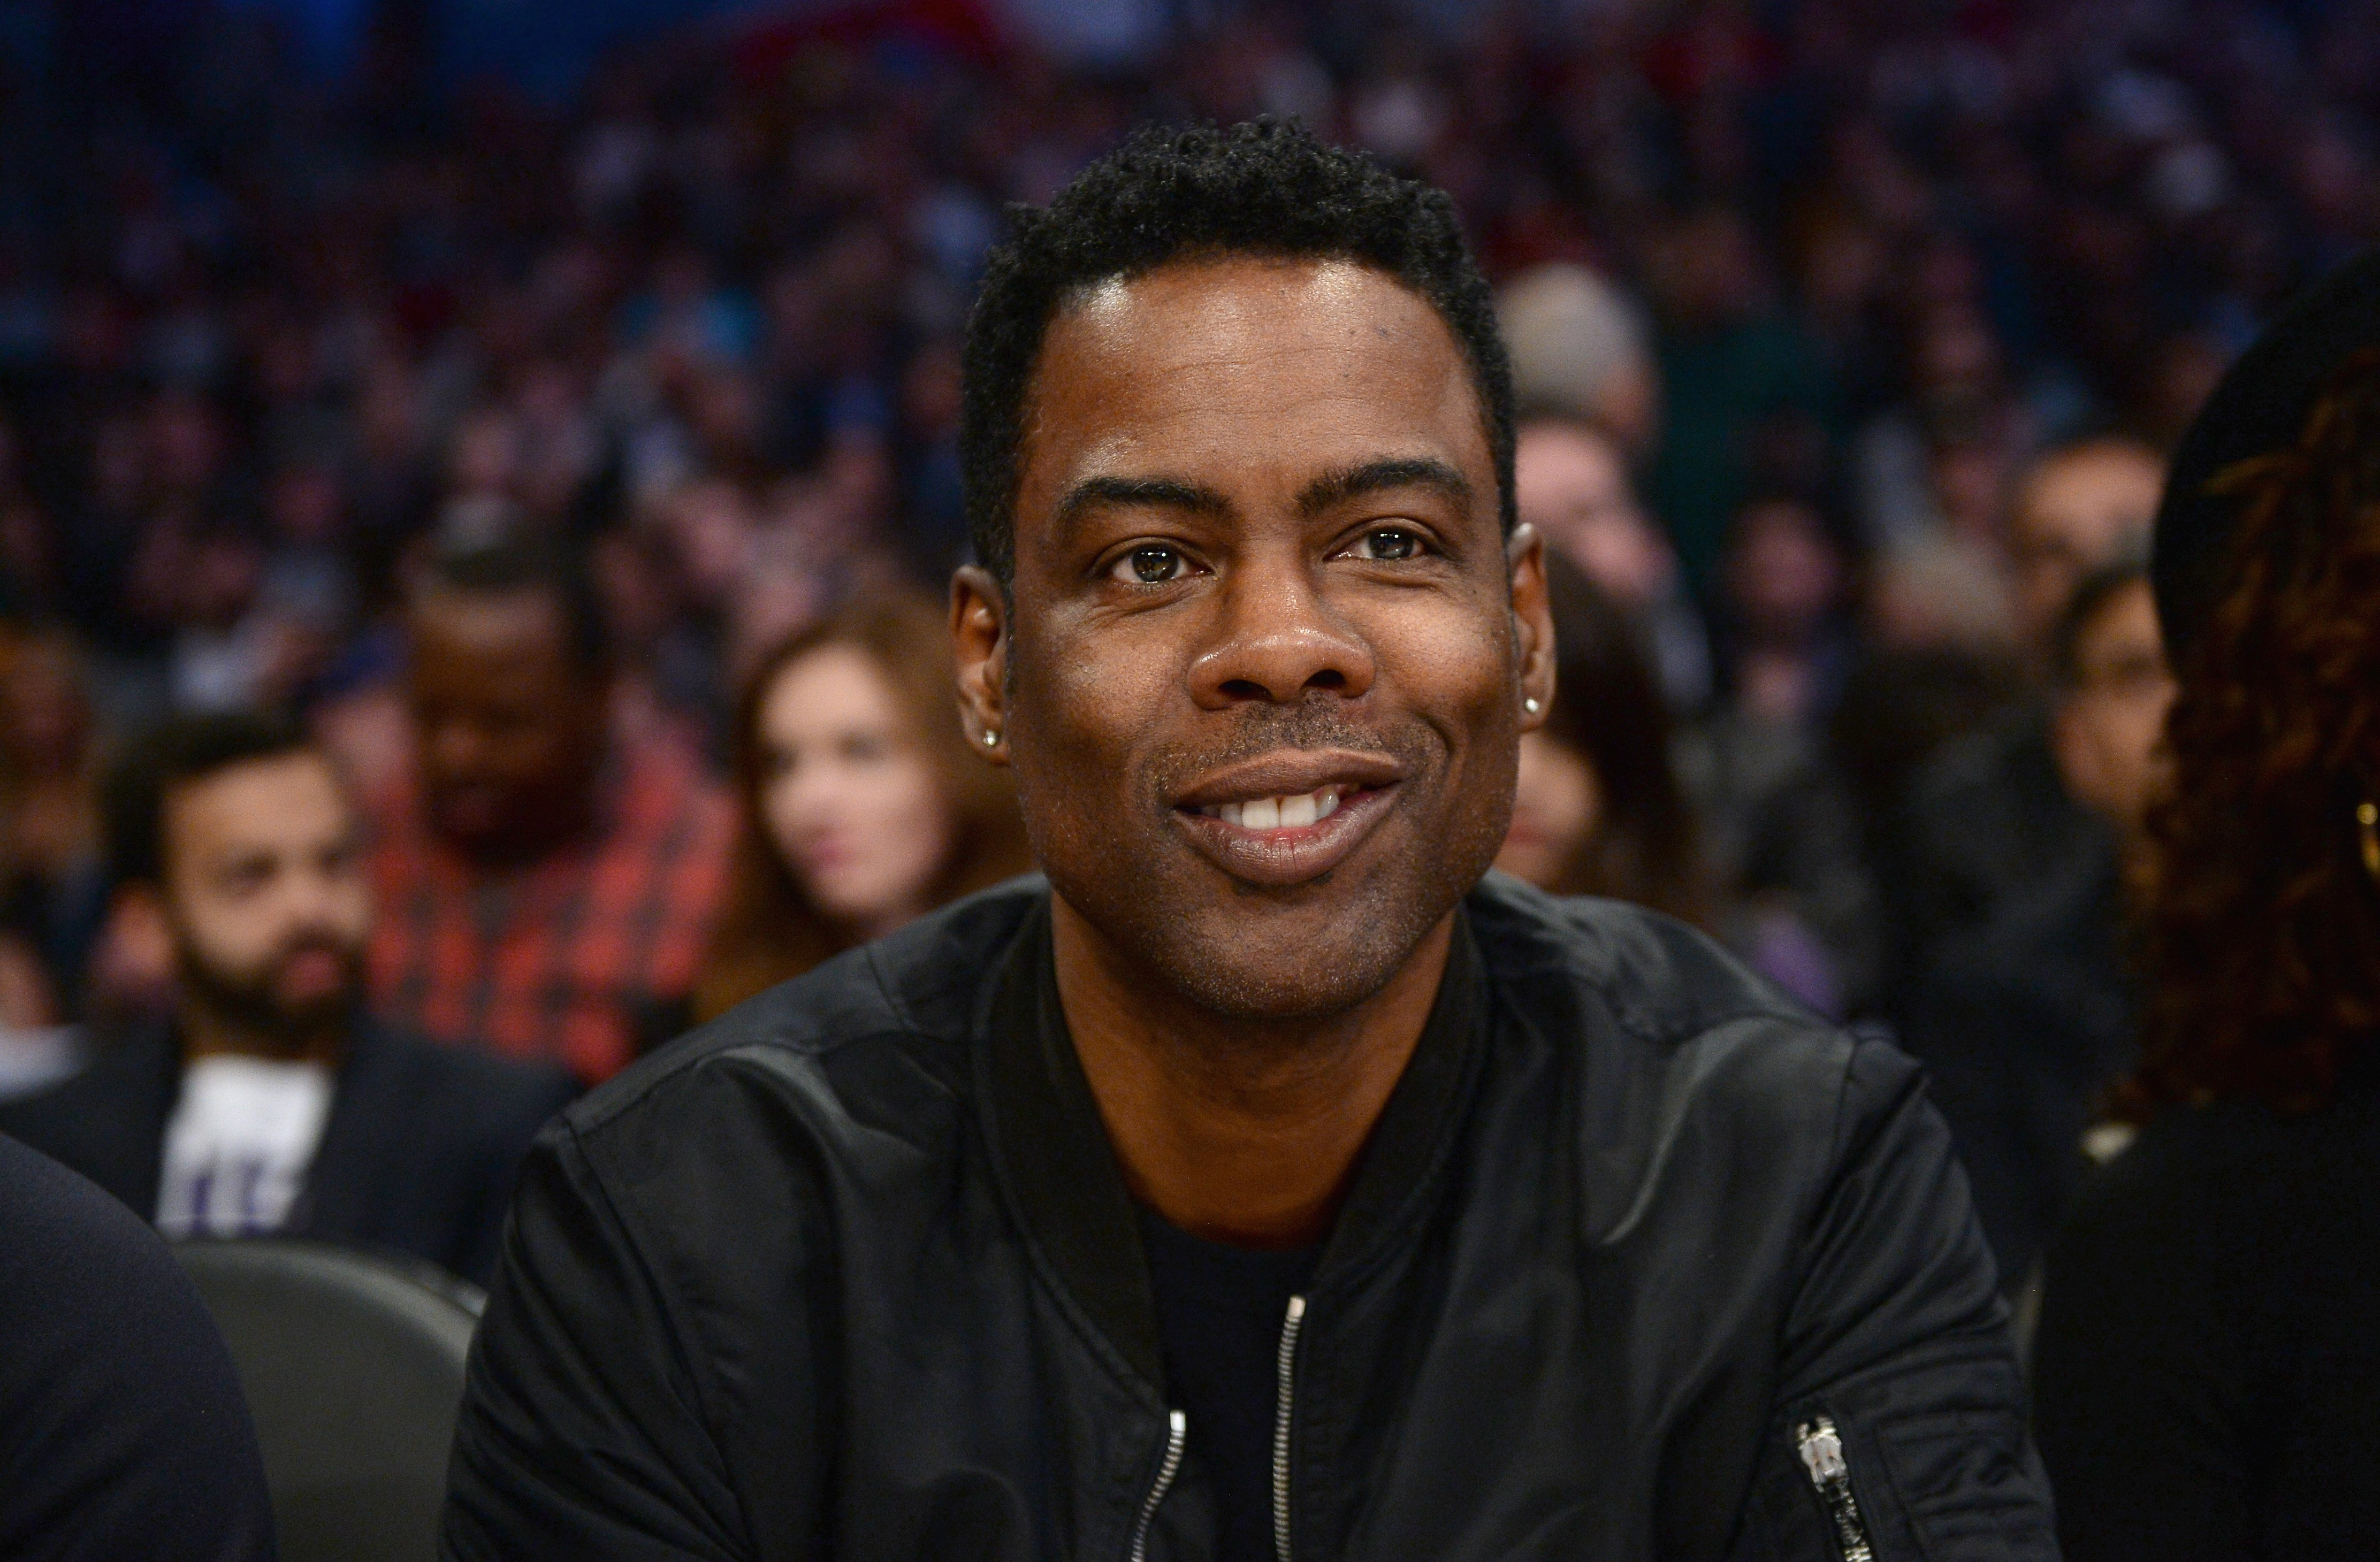 Chris Rock attends during the NBA All-Star Game 2018 at Staples Center on February 18, 2018 in Los Angeles, California. | Source: Getty Images